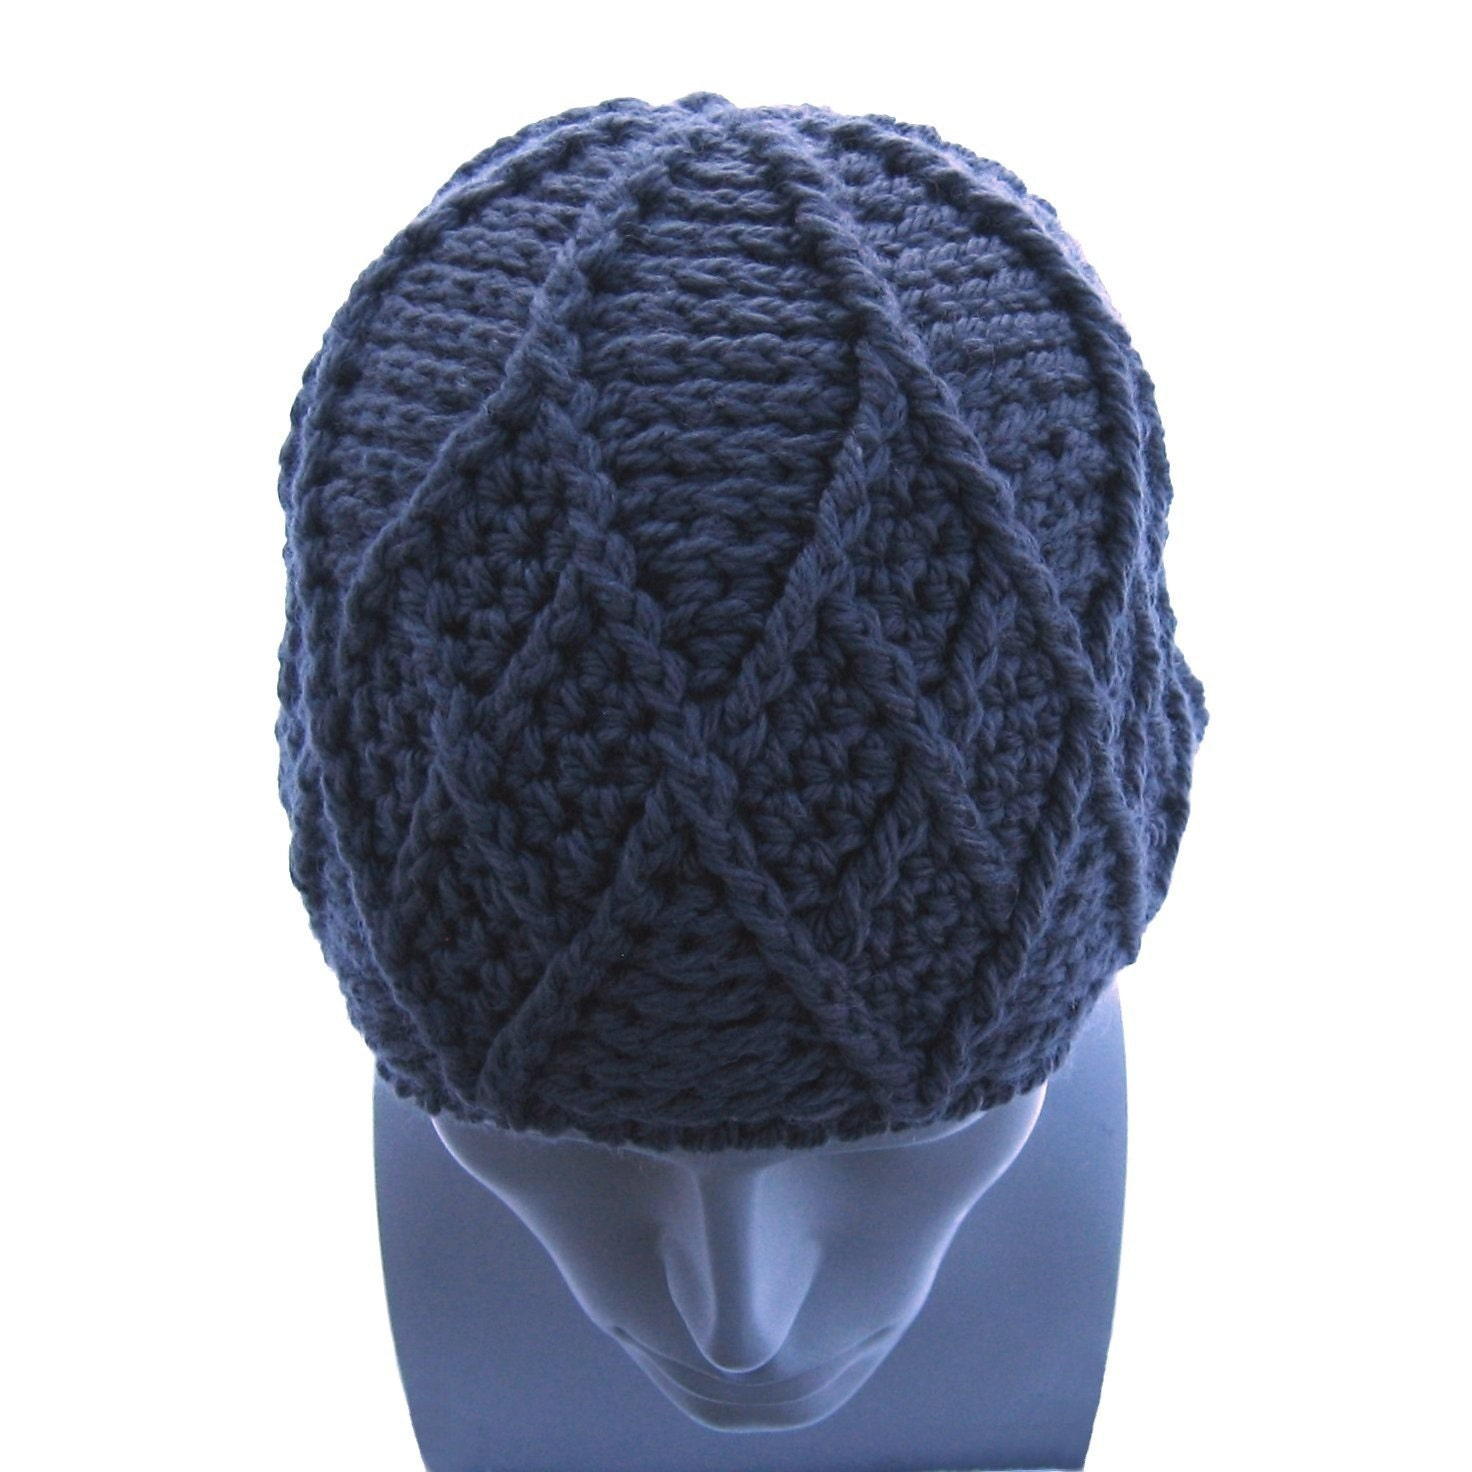 NEW Beanie Pattern - The Scotland - Fall 2010